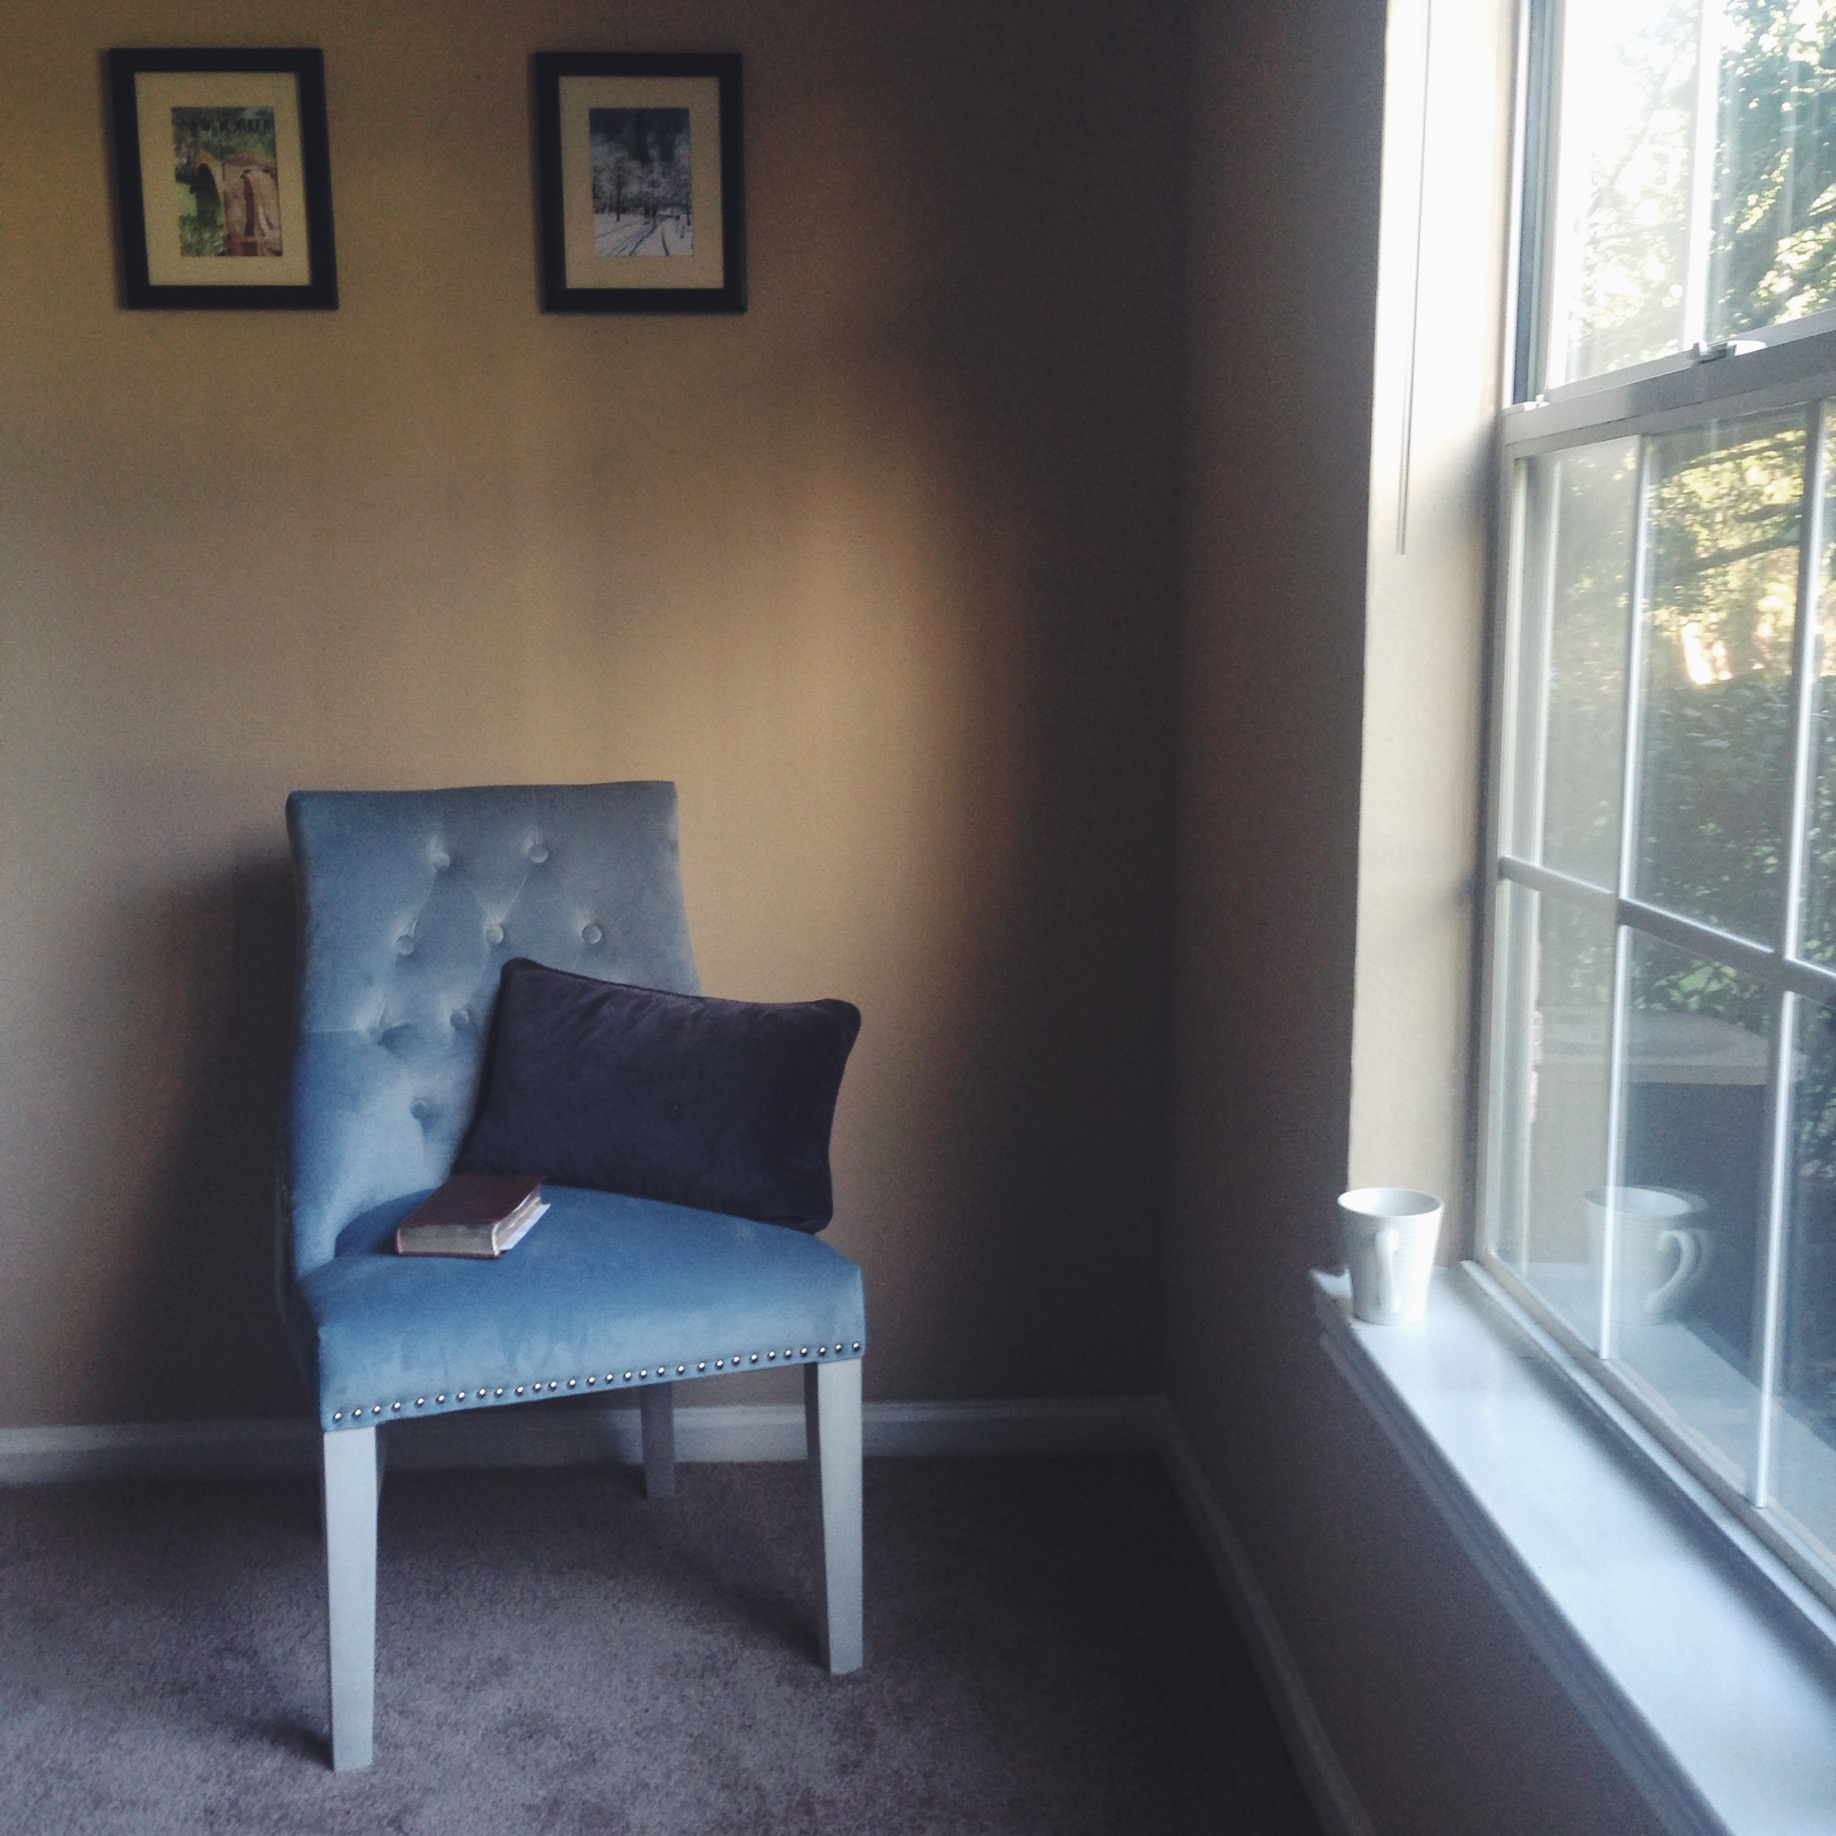 I may not have much furniture, but I do have the reading nook I've always wanted.